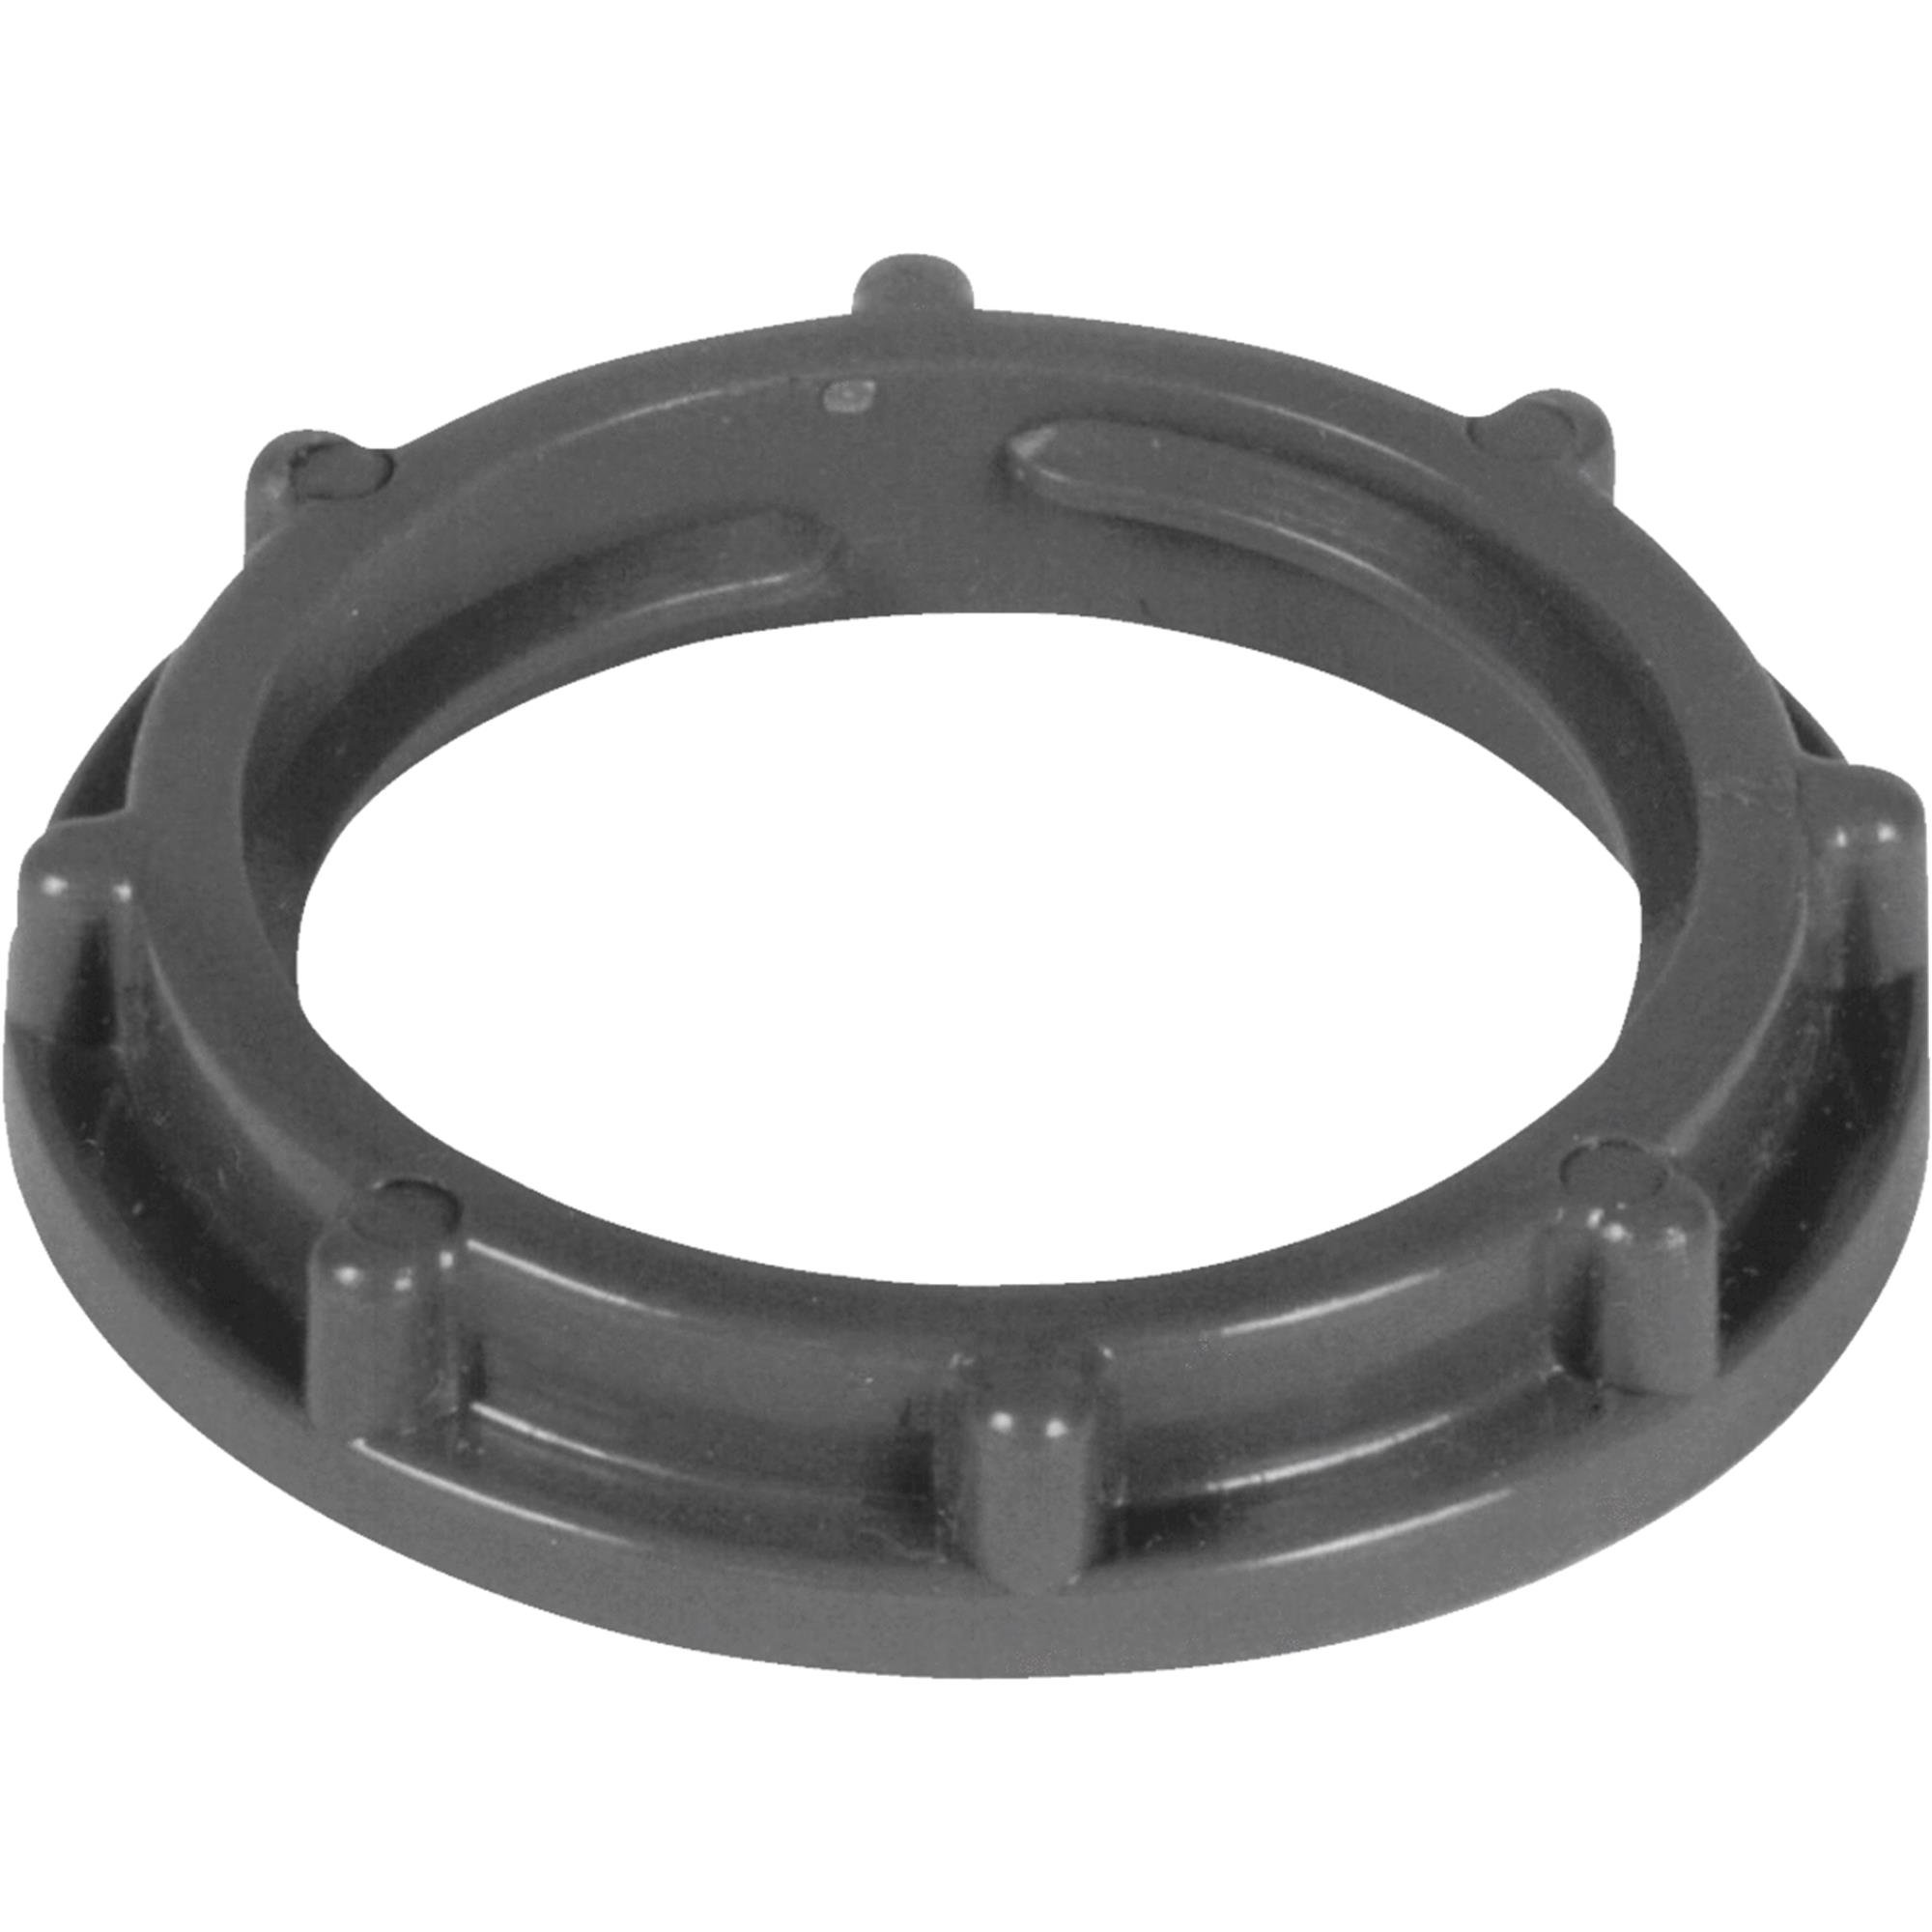 "Thomas & Betts 3/4"" Pvc Locknut LT9LER"